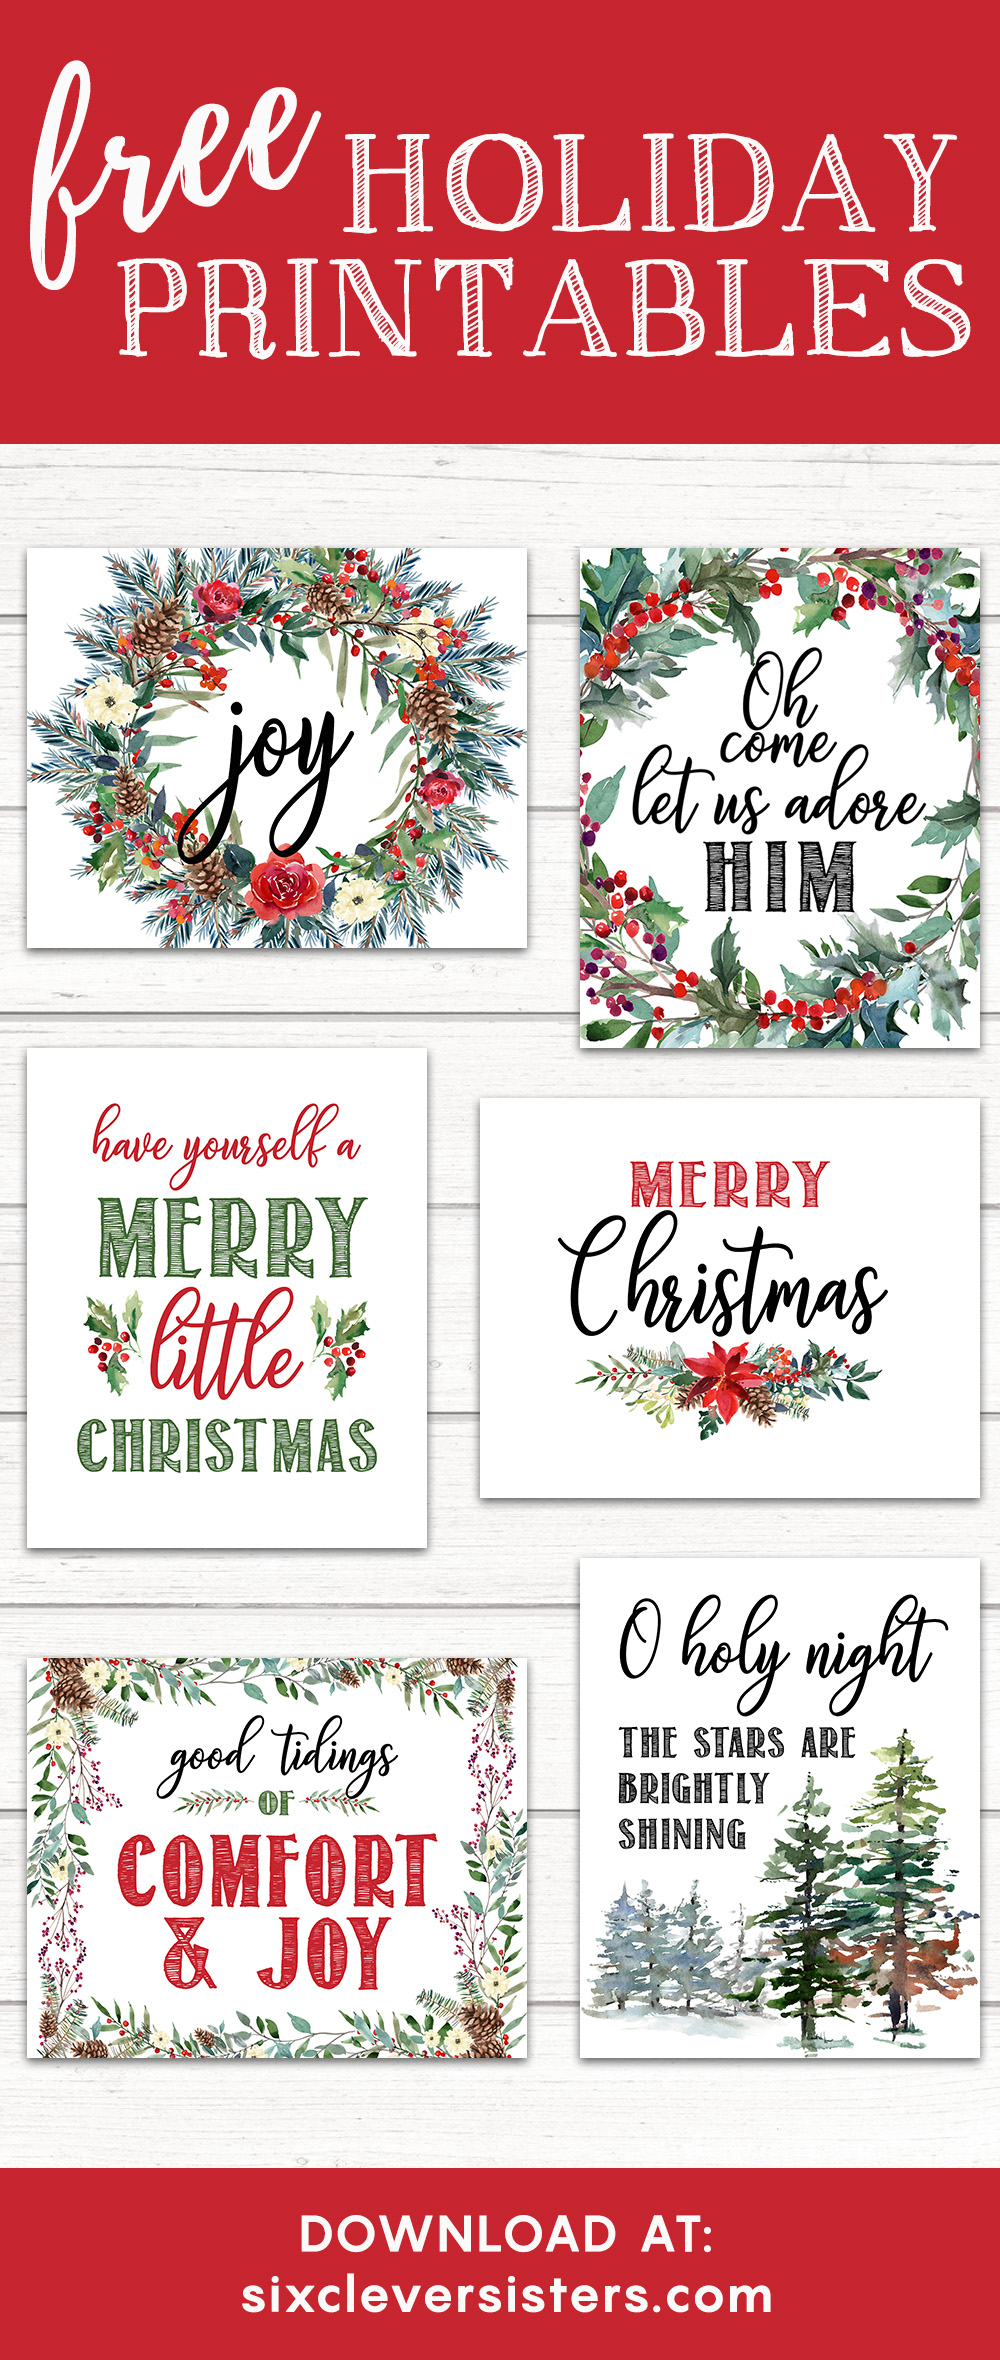 image regarding Merry Christmas Sign Printable referred to as 6 Cost-free Printable Xmas Indicators - 6 Wise Sisters